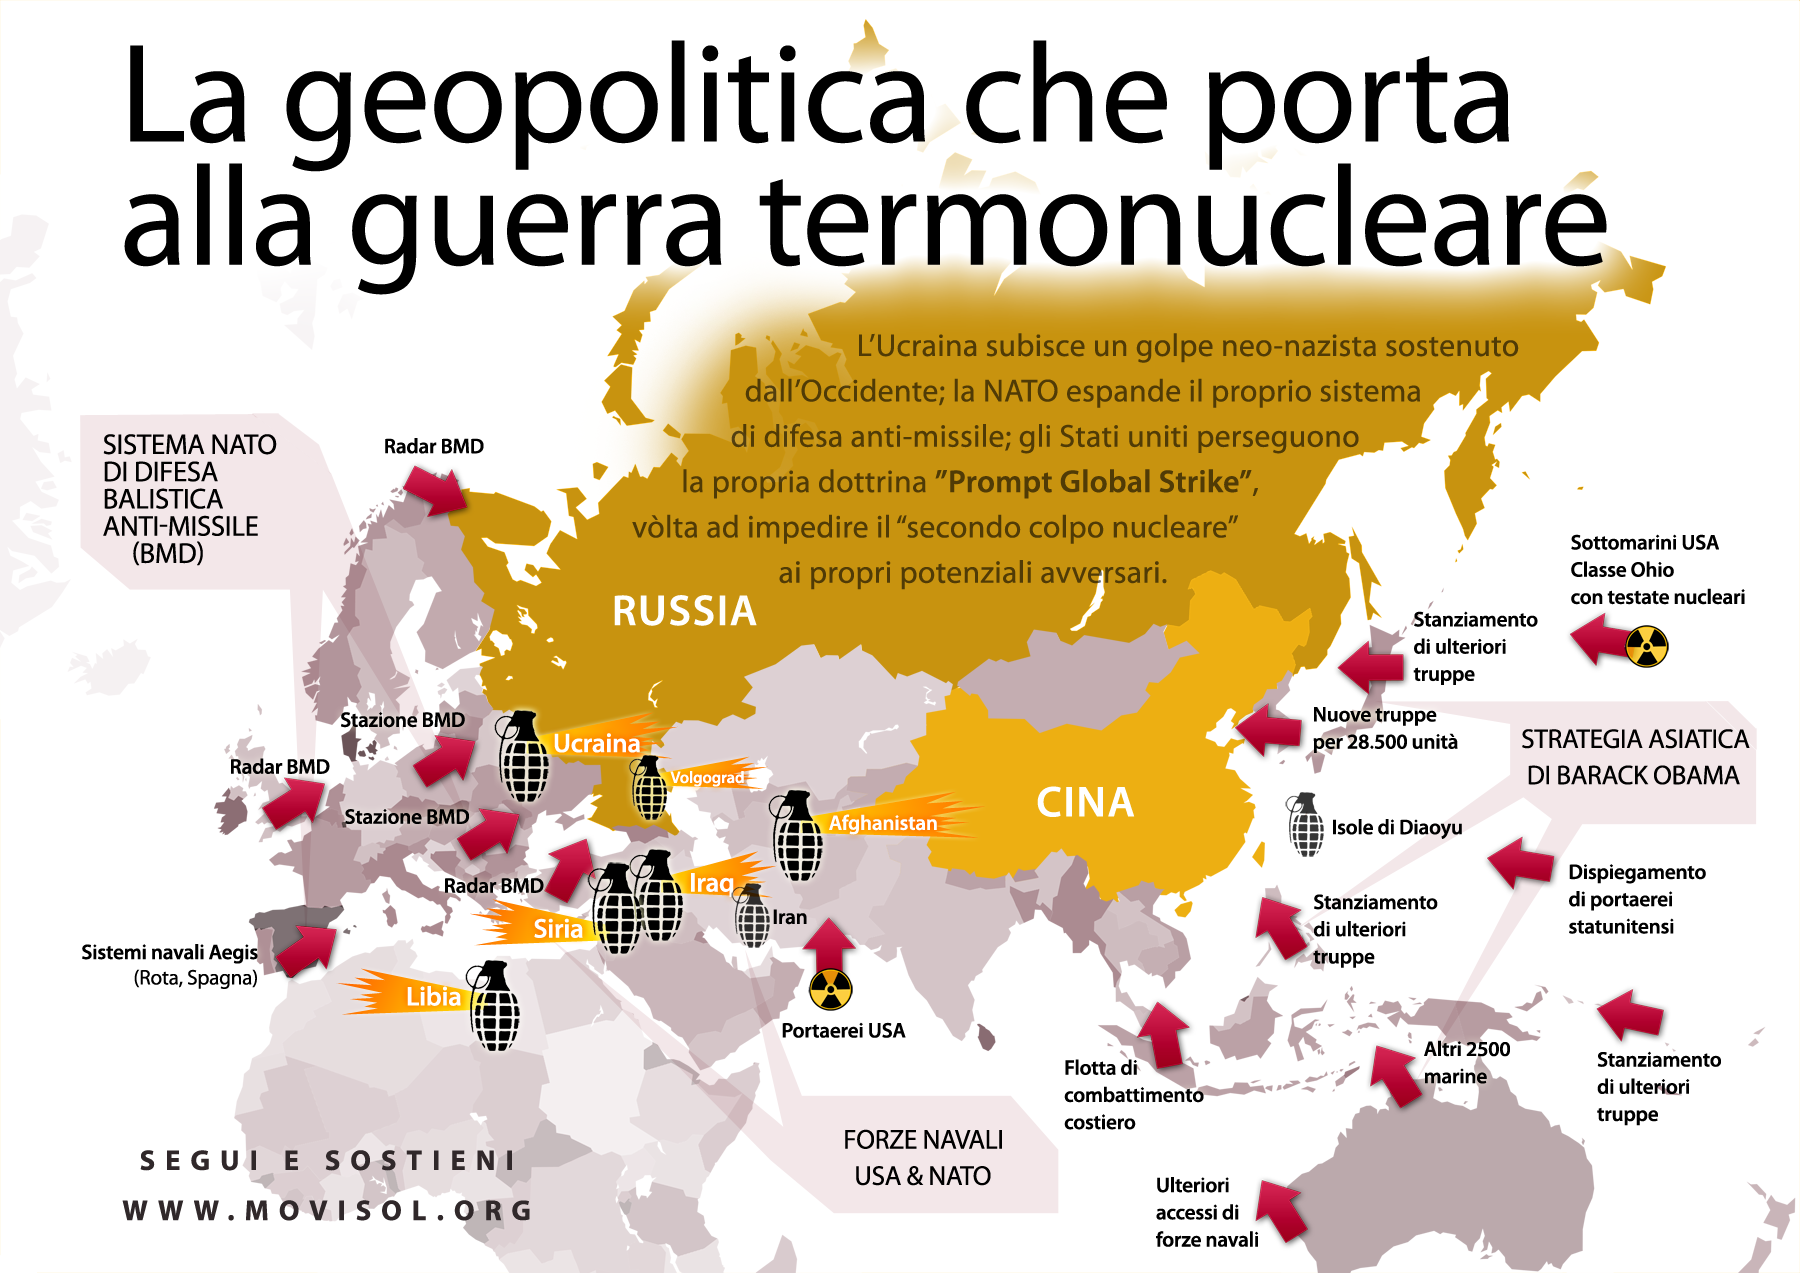 guerra globale termonucleare